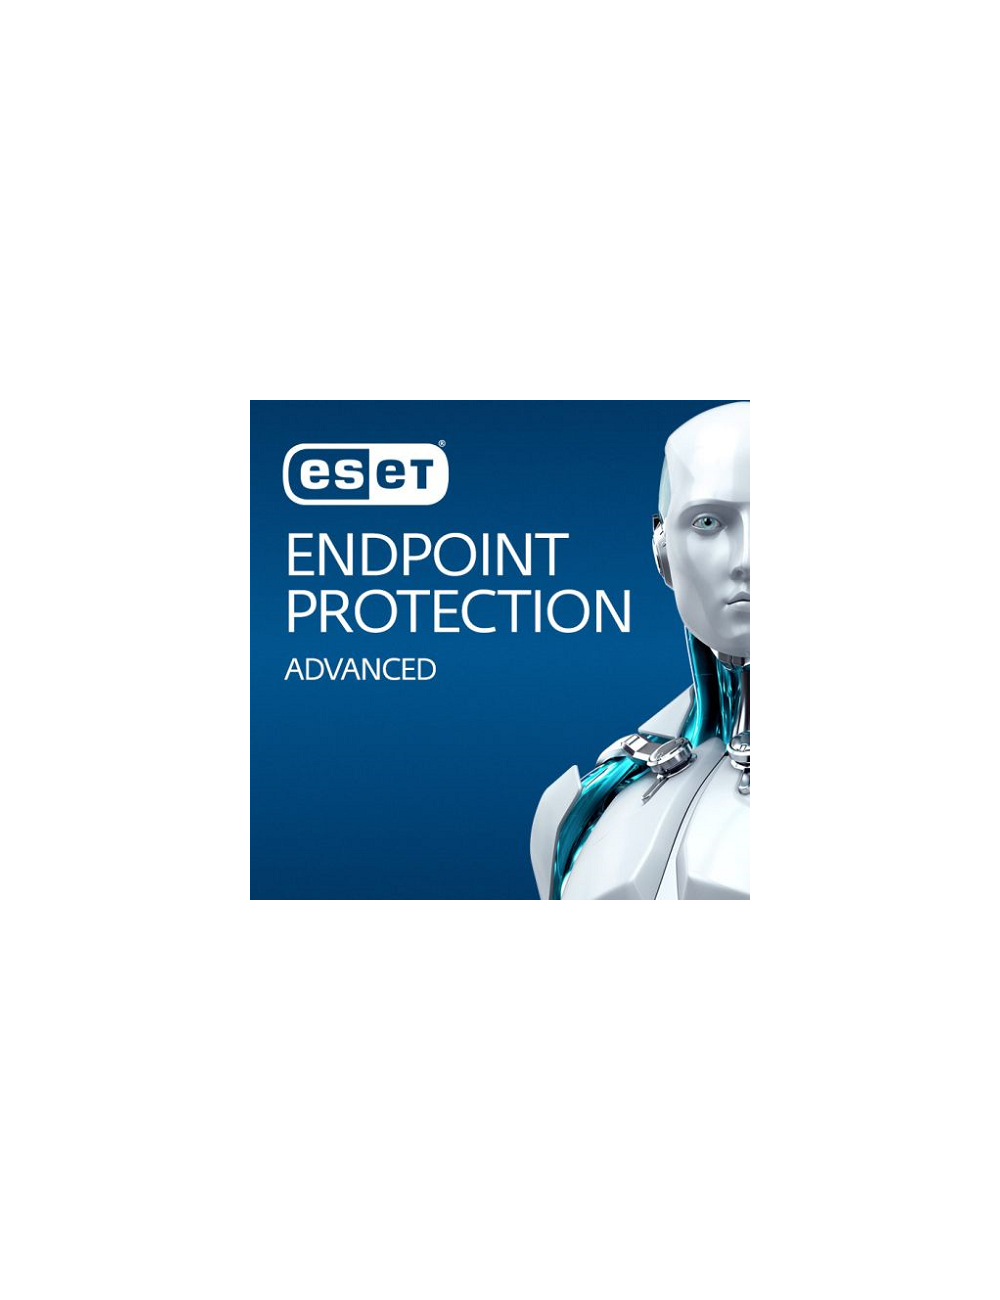 ESET Endpoint Protection Advanced (11-25 devices) -  License 1 device - 1 year